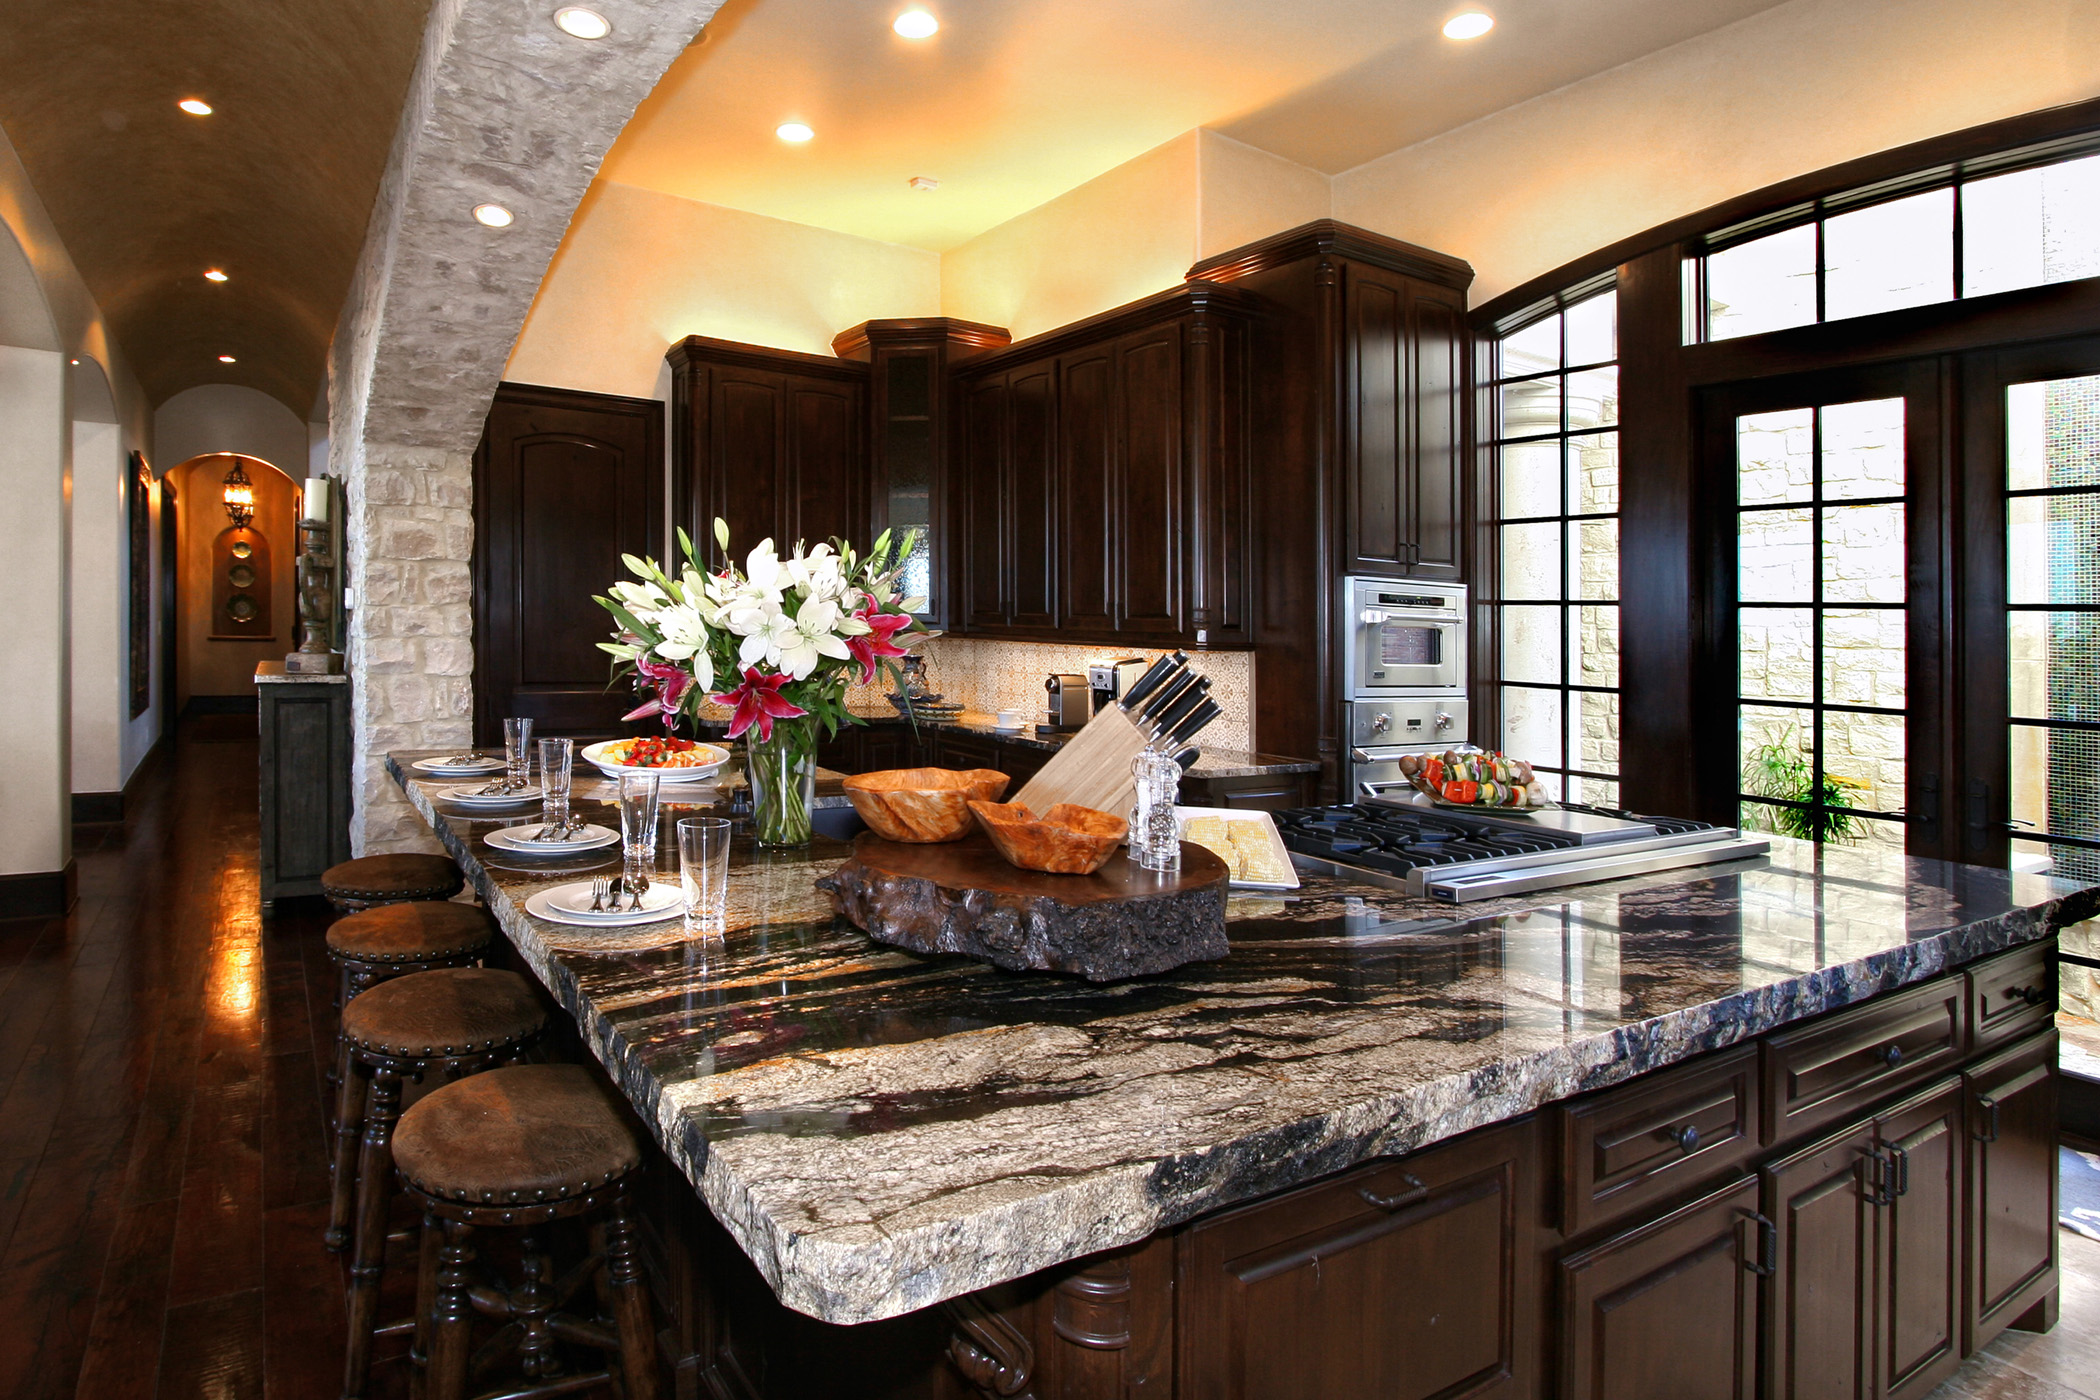 Home Premier Stone Inc Granite Countertops And More